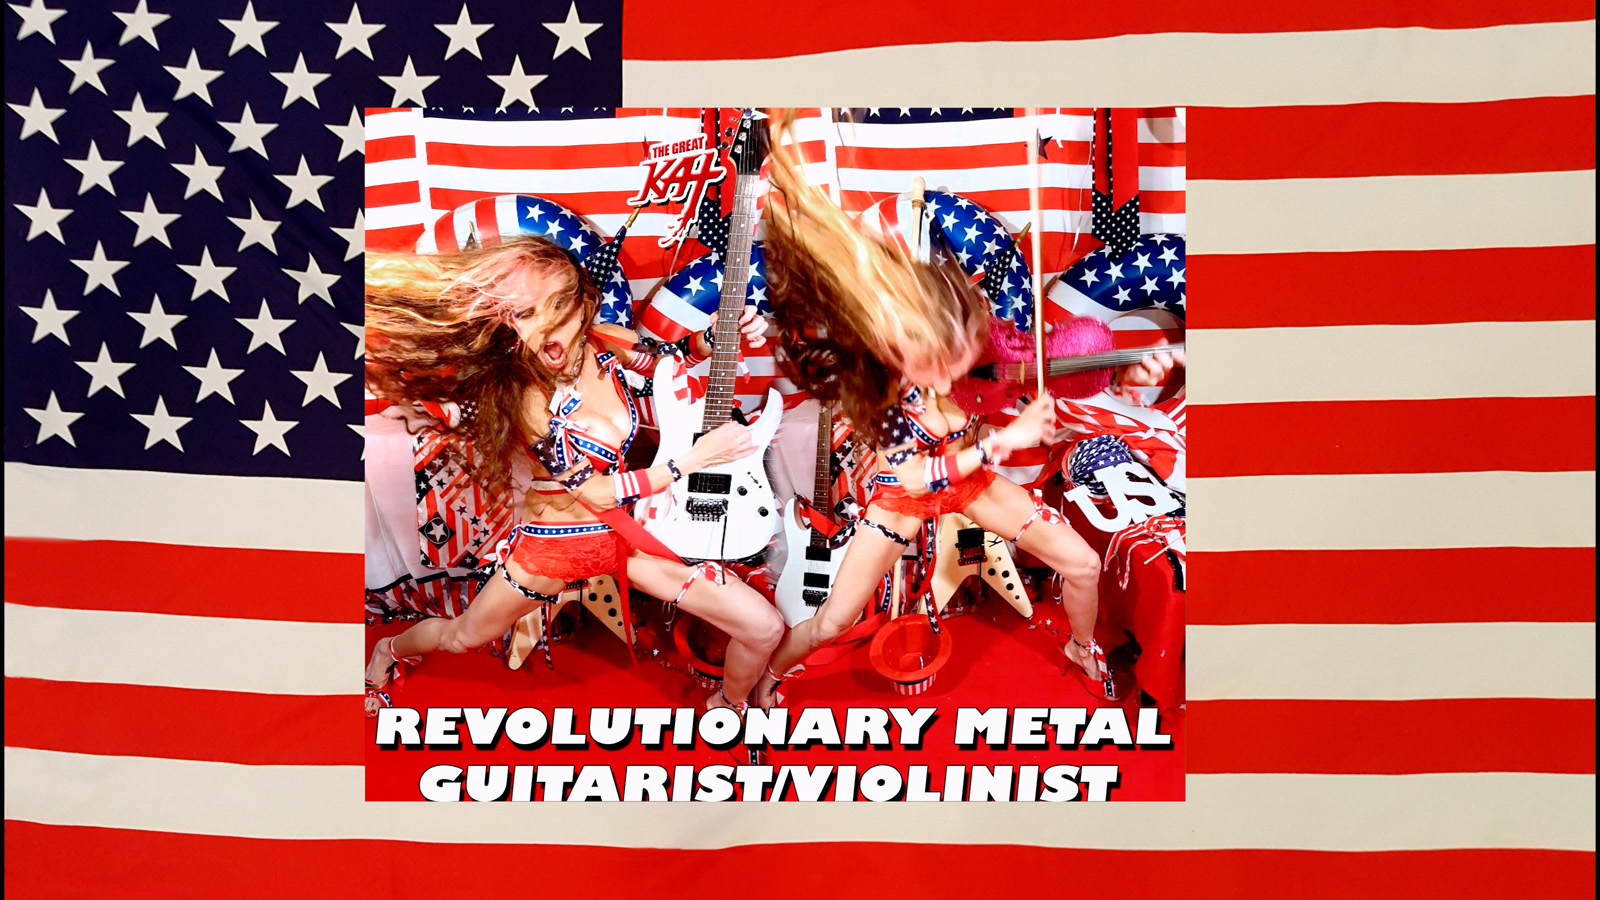 REVOLUTIONARY METAL GUITARIST/VIOLINIST!